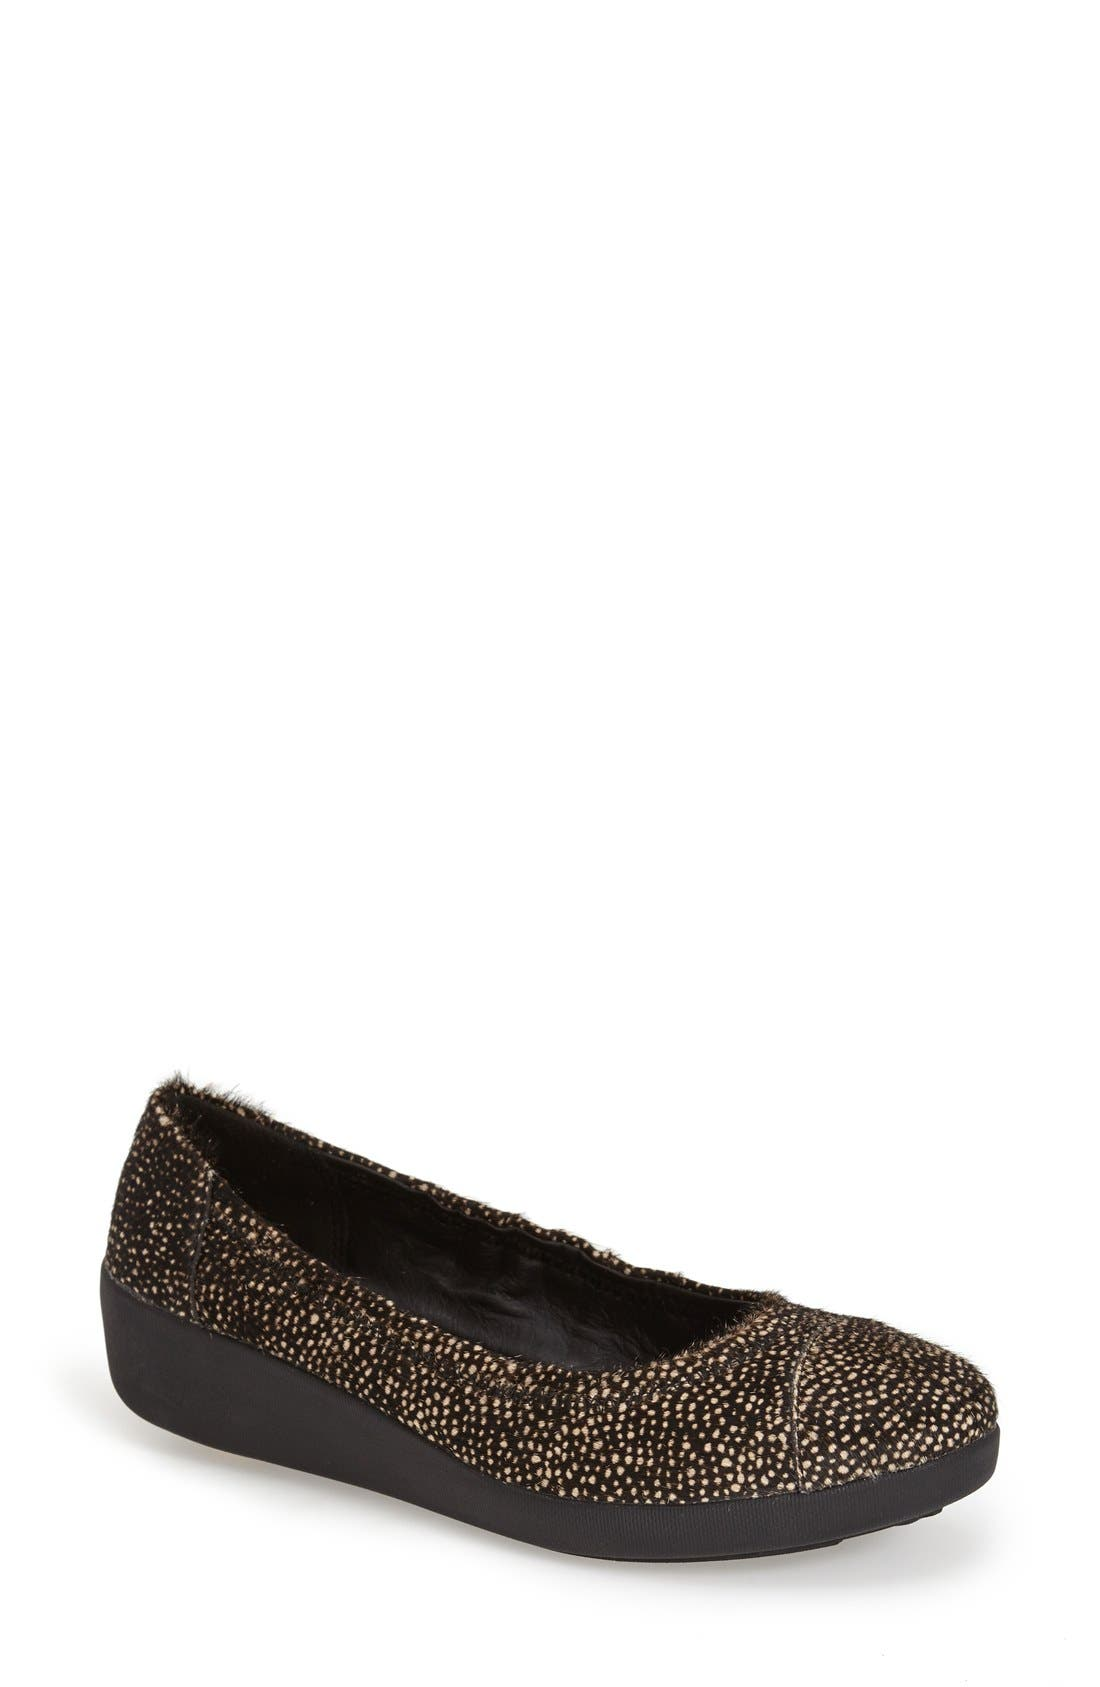 FITFLOP  'F-Pop' Leather Ballerina Flat, Main, color, 017